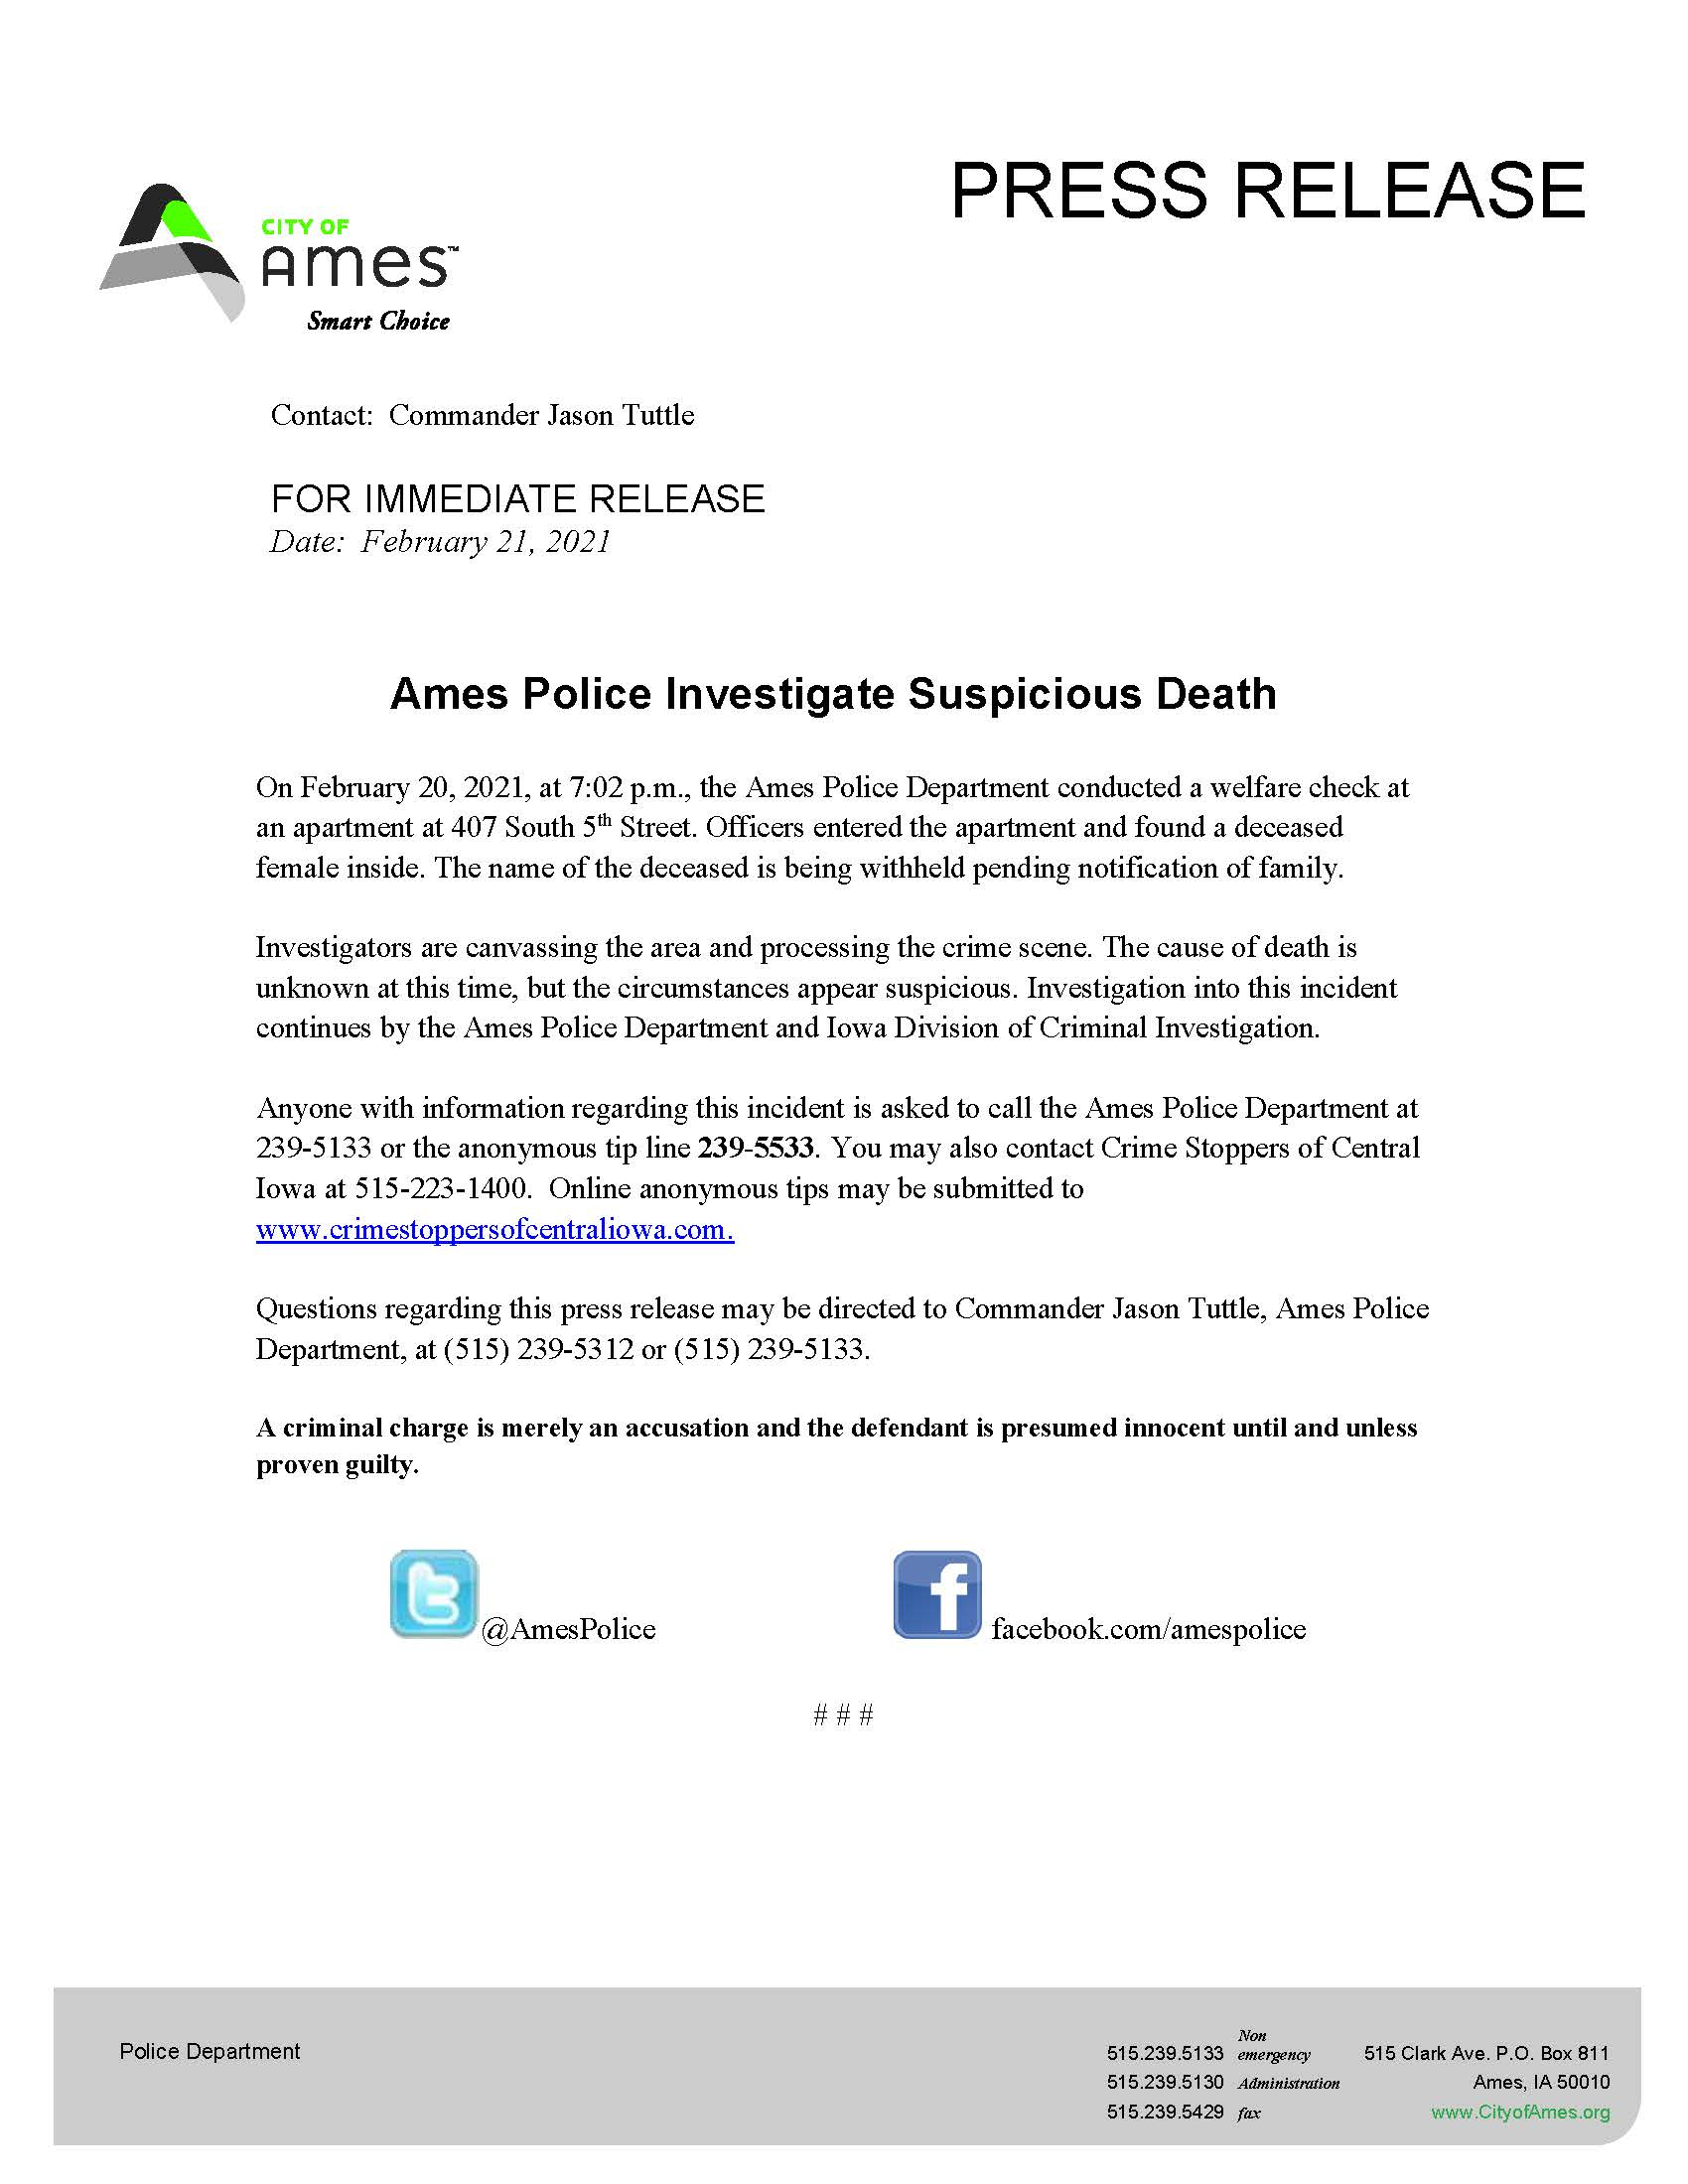 Link to Ames press release